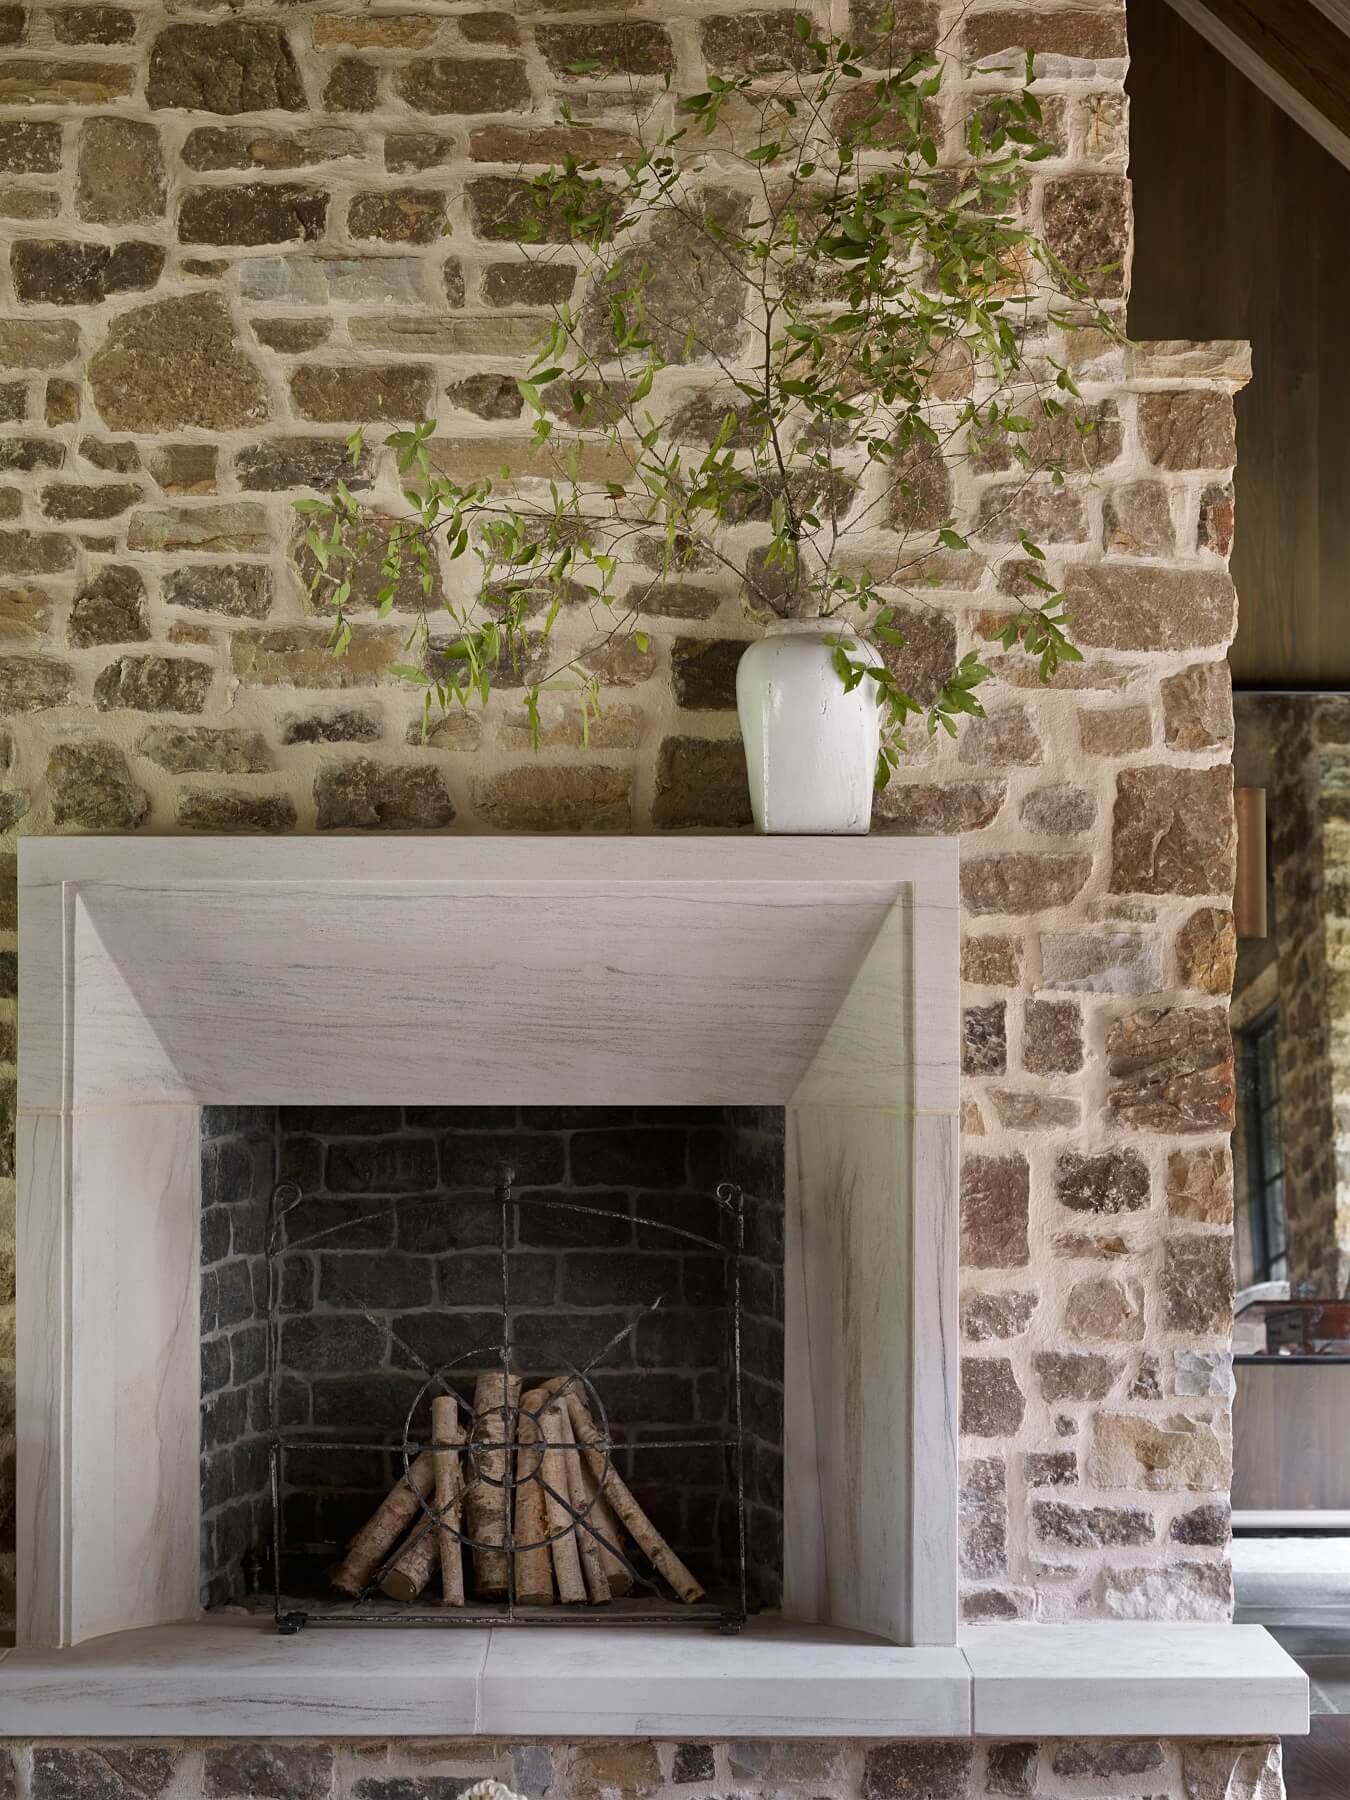 """The fireplace in this room is of the finest limestone I have ever seen,"" says Beth. ""It resembles marble and has a modern edge to the design of it. Still my favorite fireplace to this day!"""